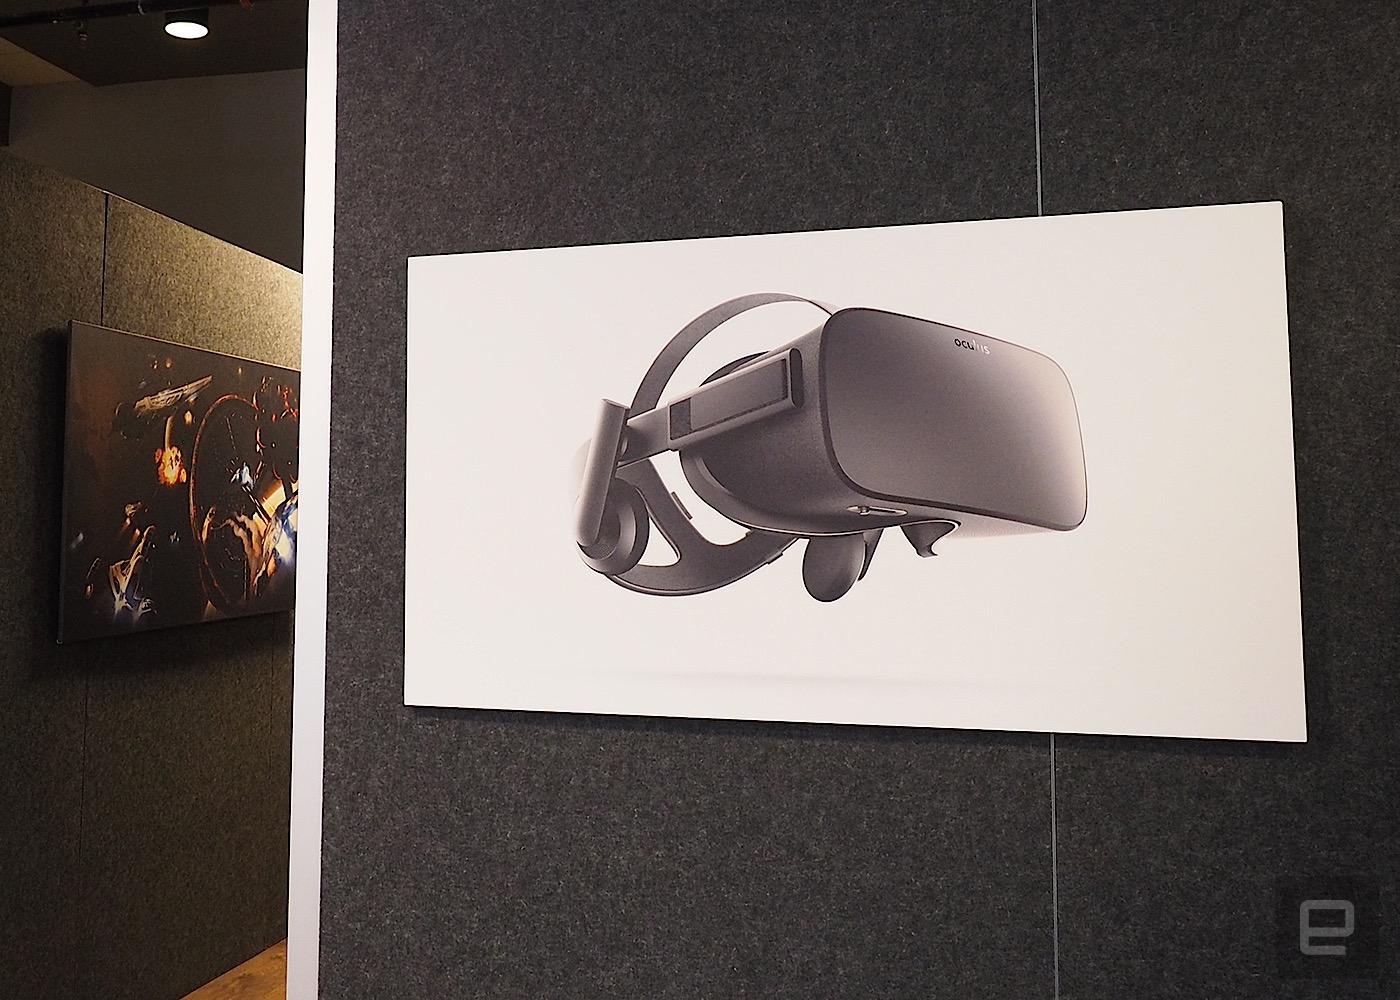 The first Oculus Rift games bode well for VR's future